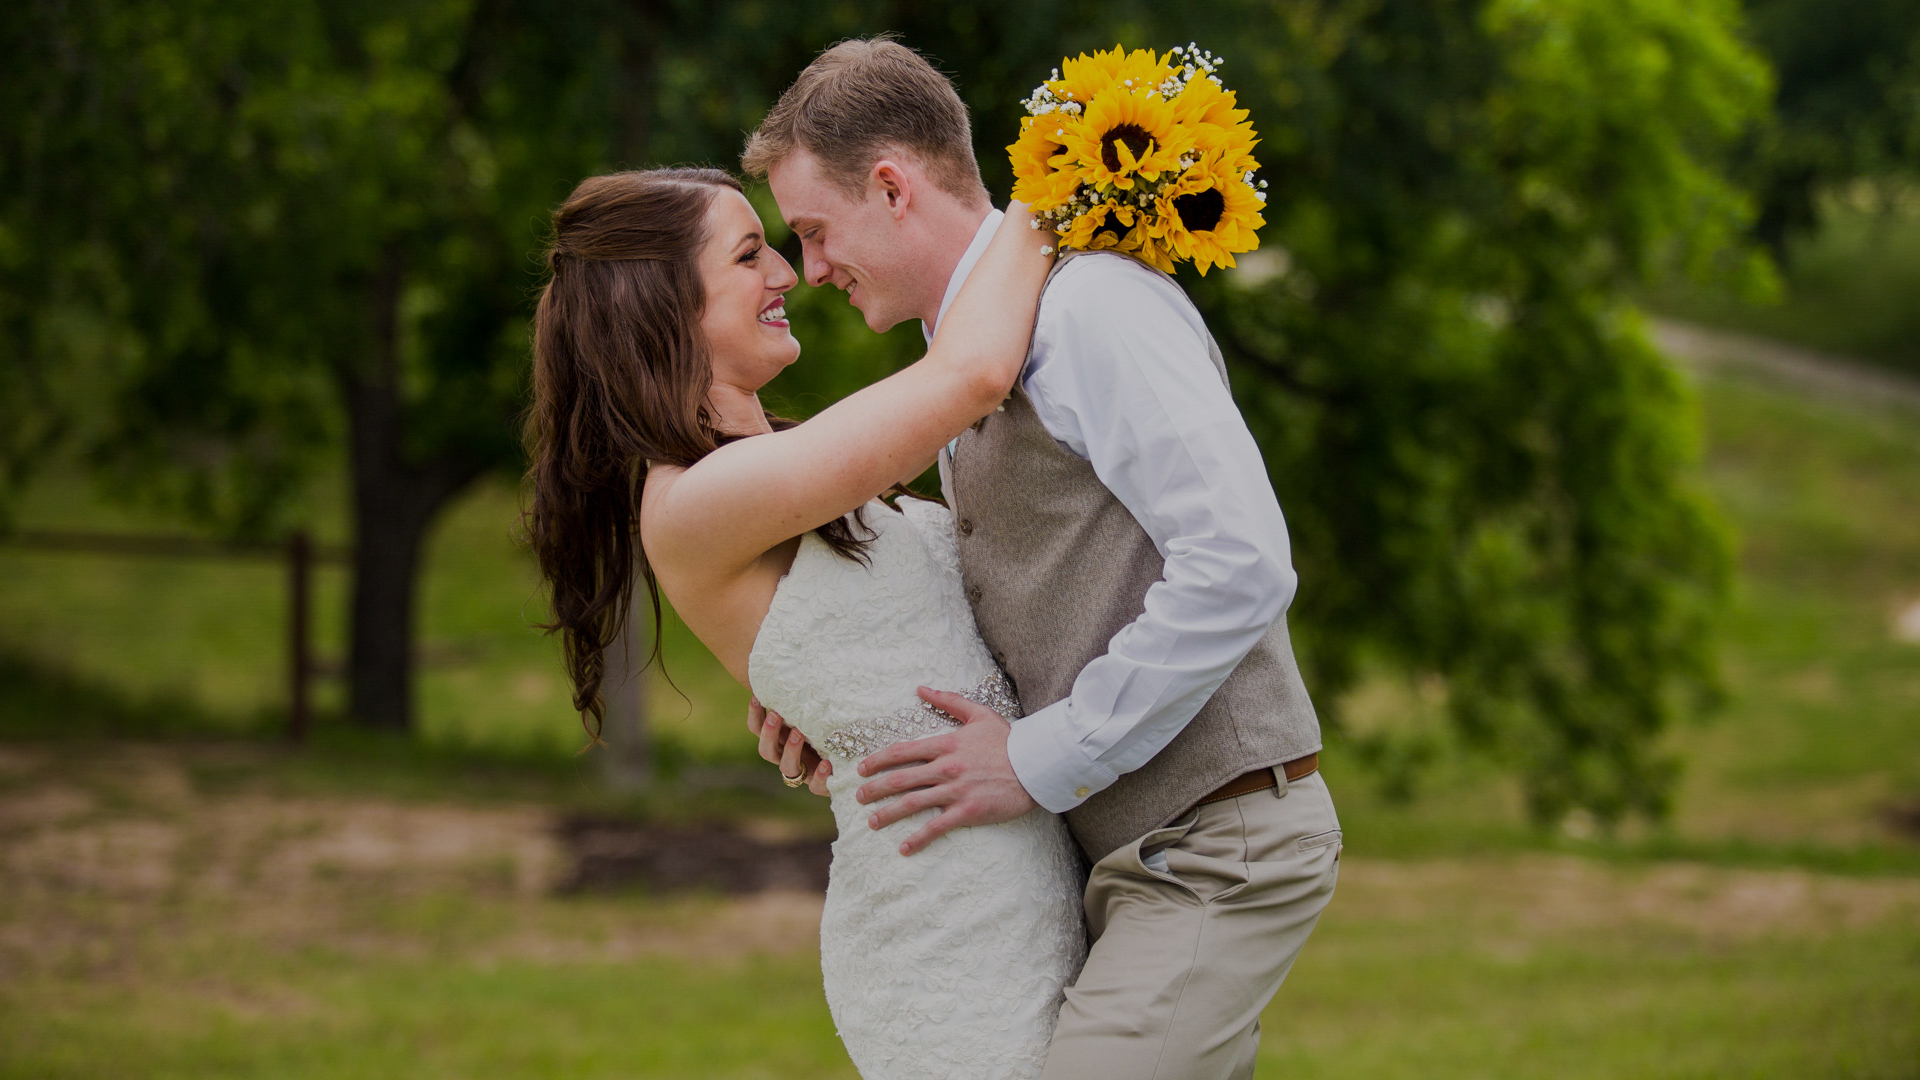 Check portfolios, pricing and availability for wedding photographers in Dallas